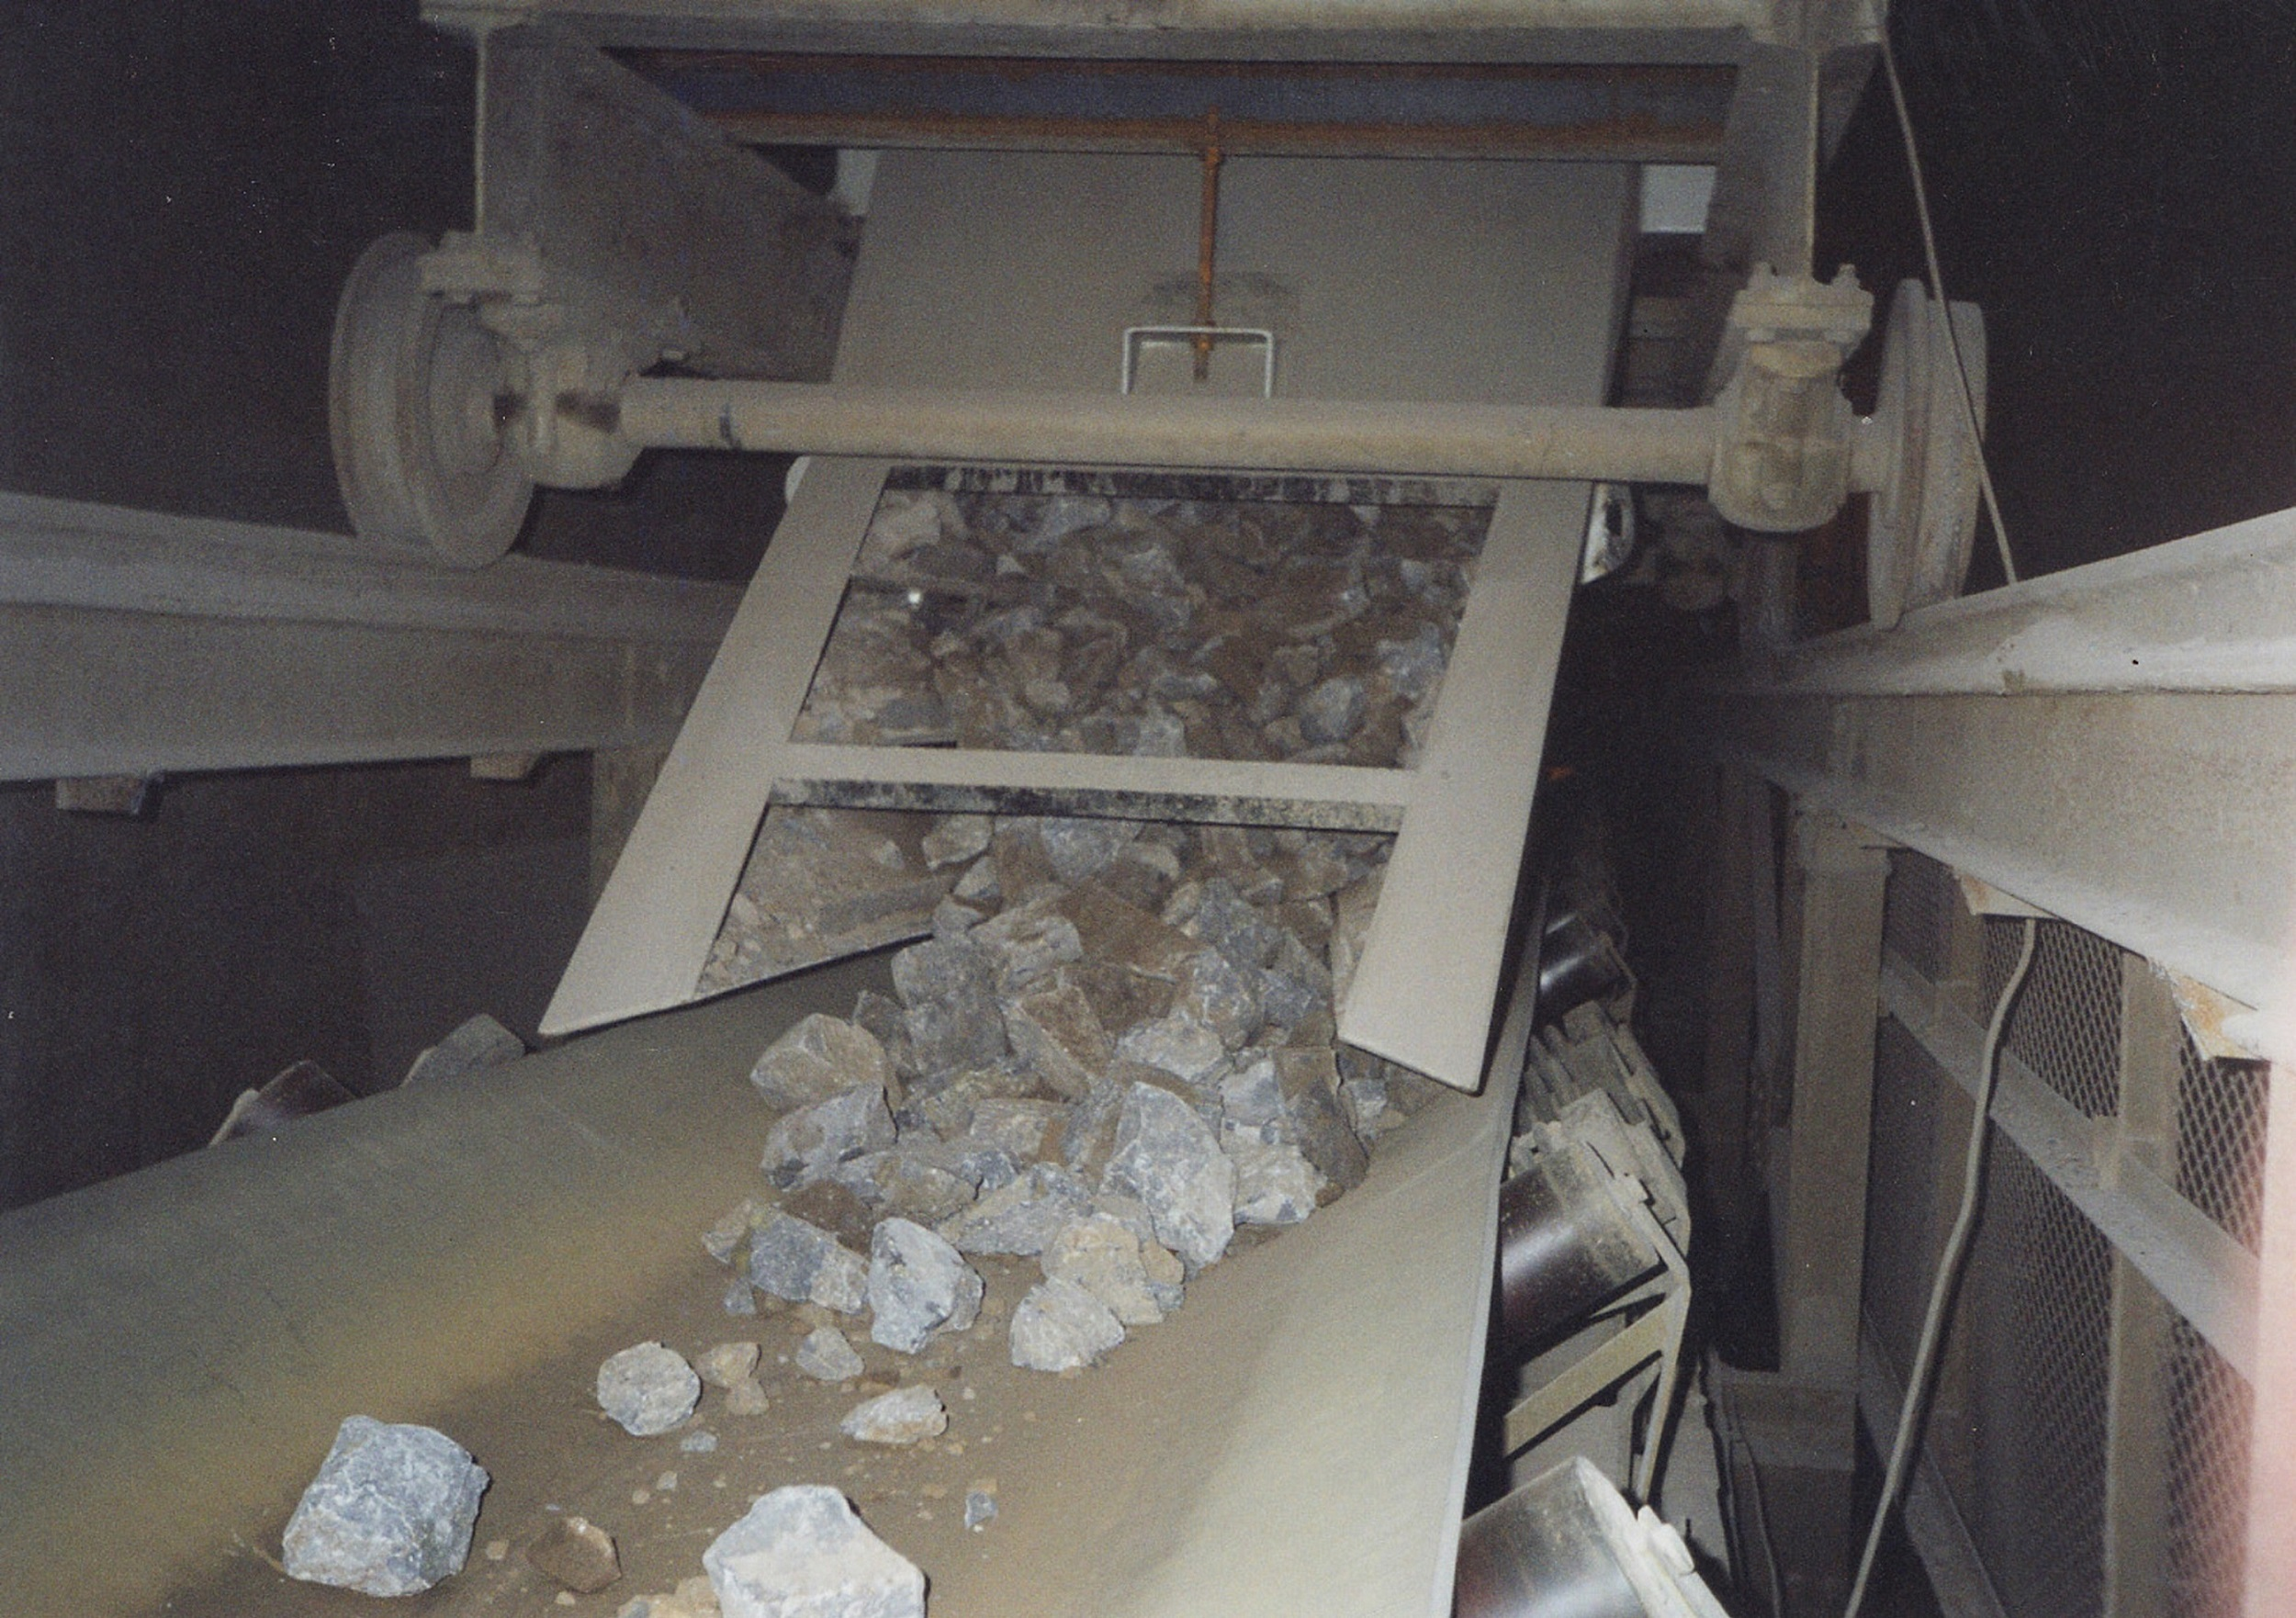 Chute system cuts minerals processing maintenance costs